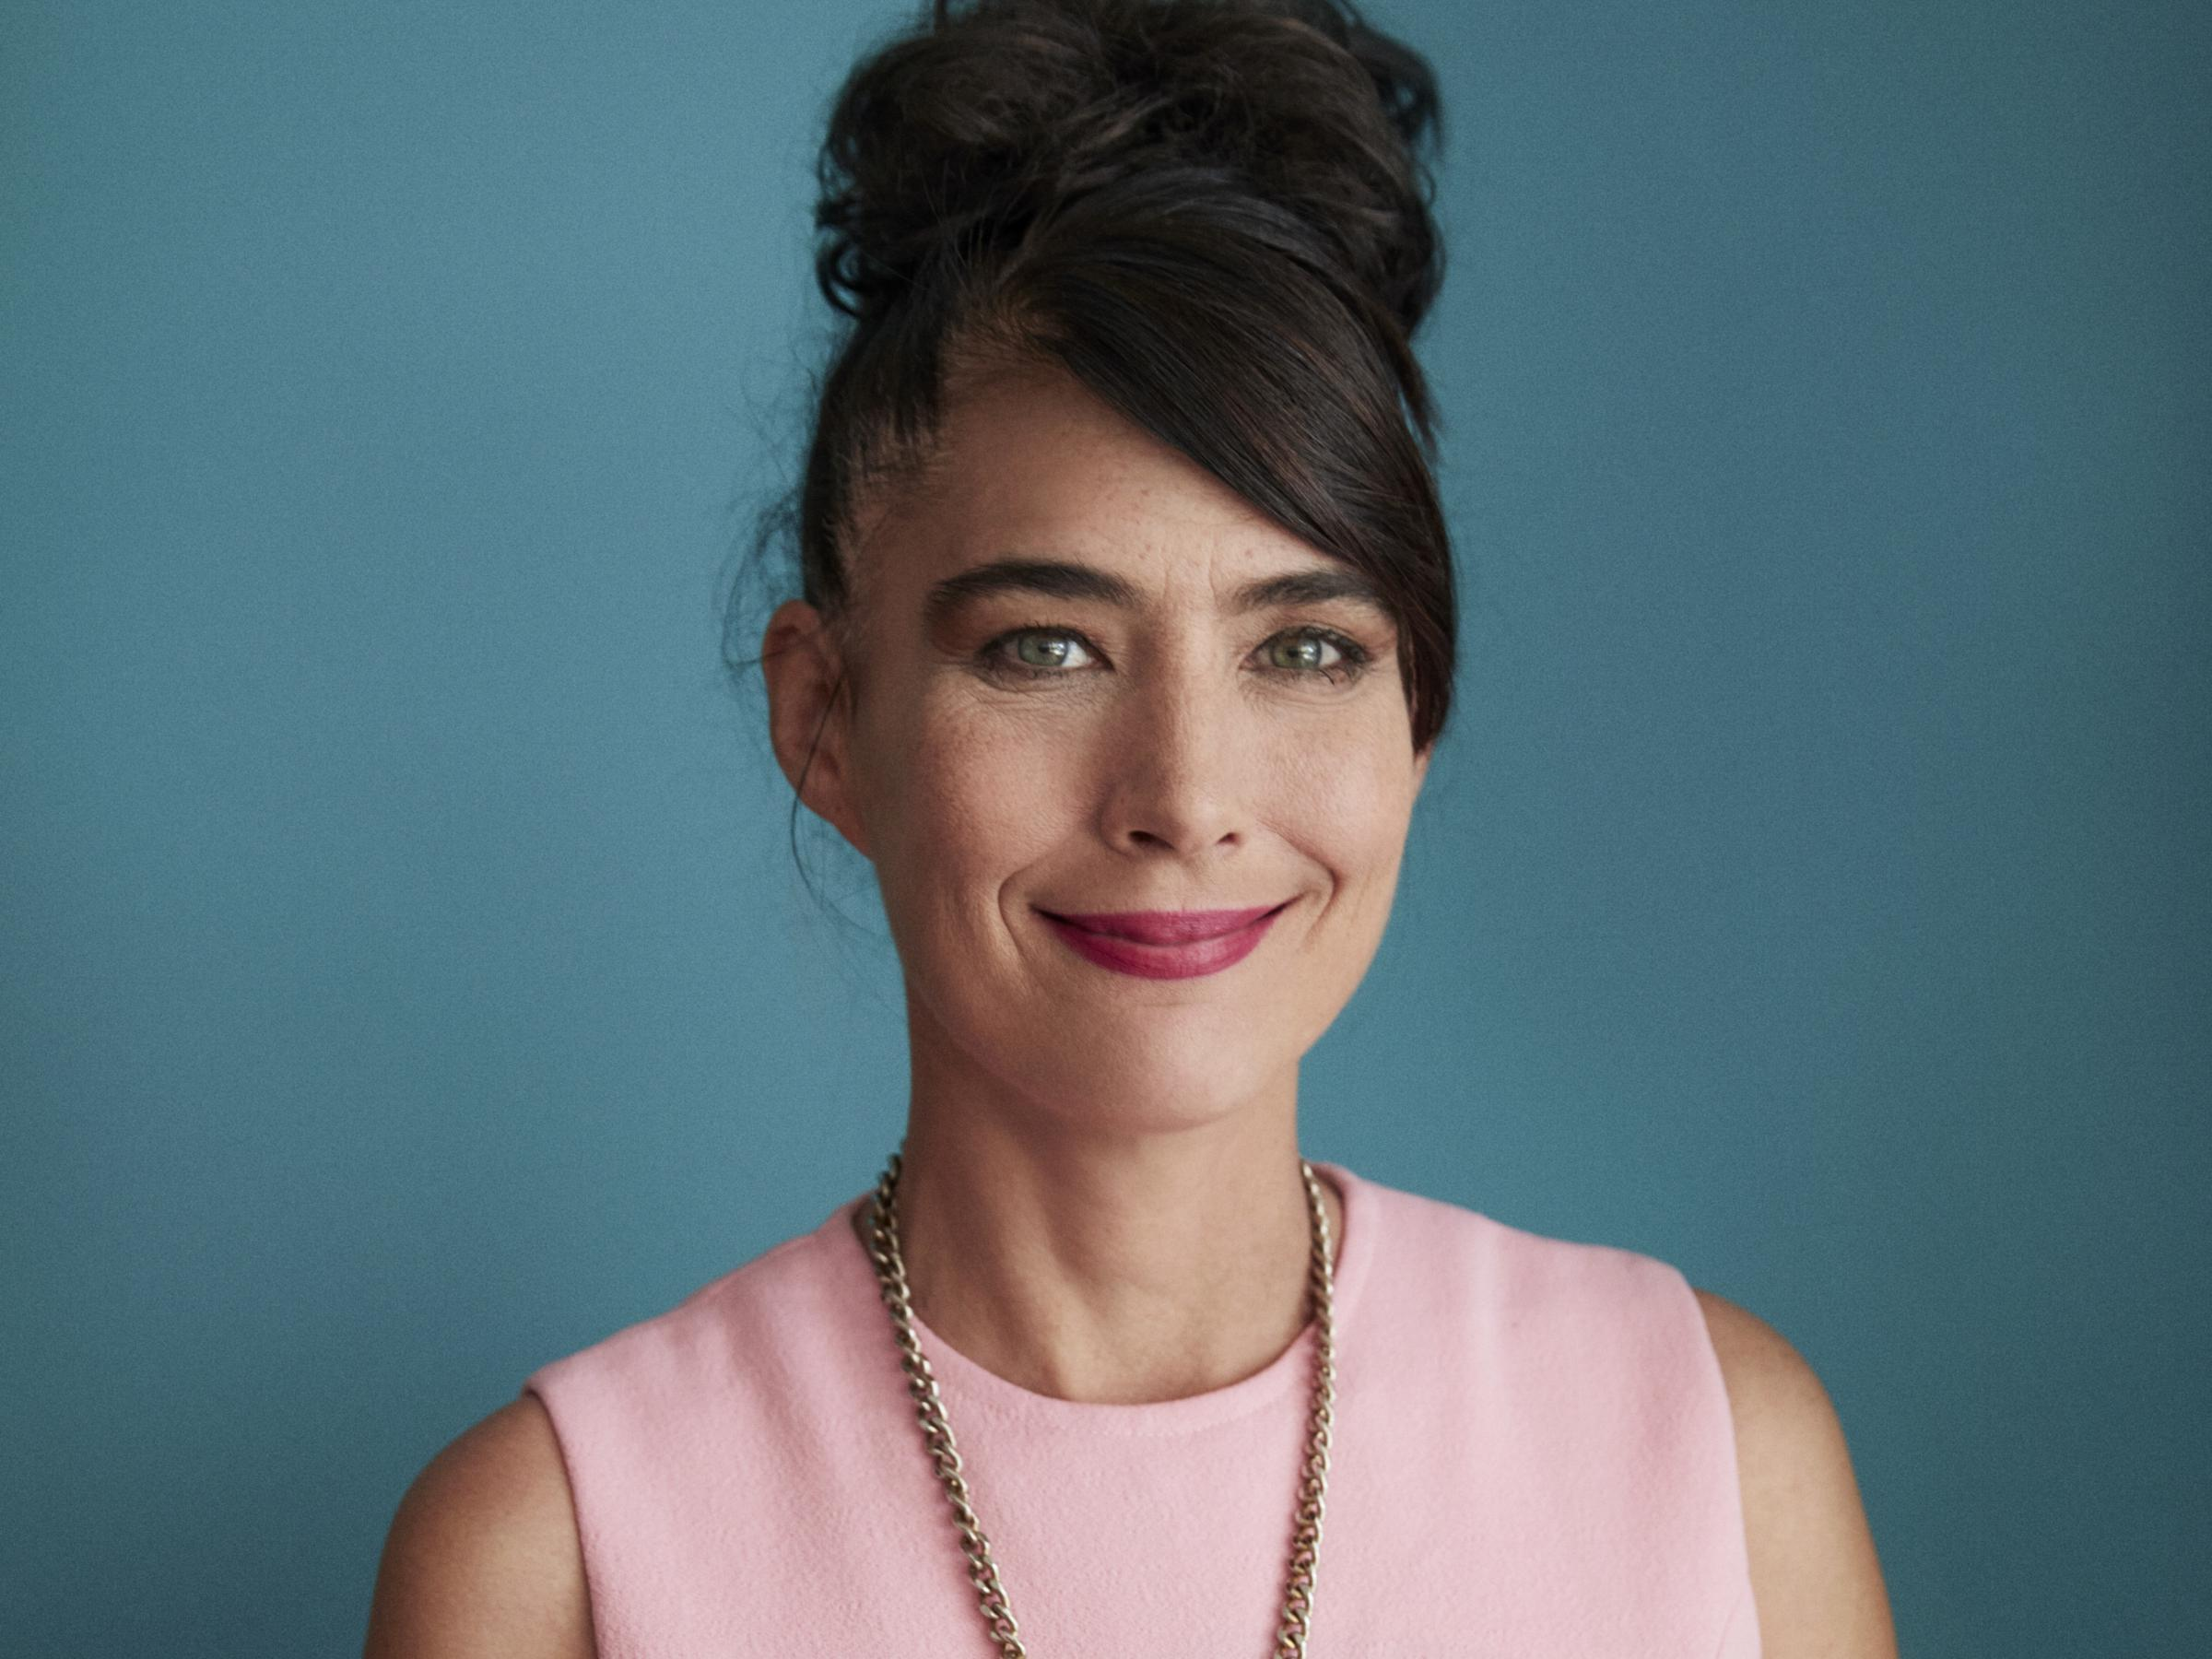 Fascination, Friendship And Desire: Kathleen Hanna On The Reign Of